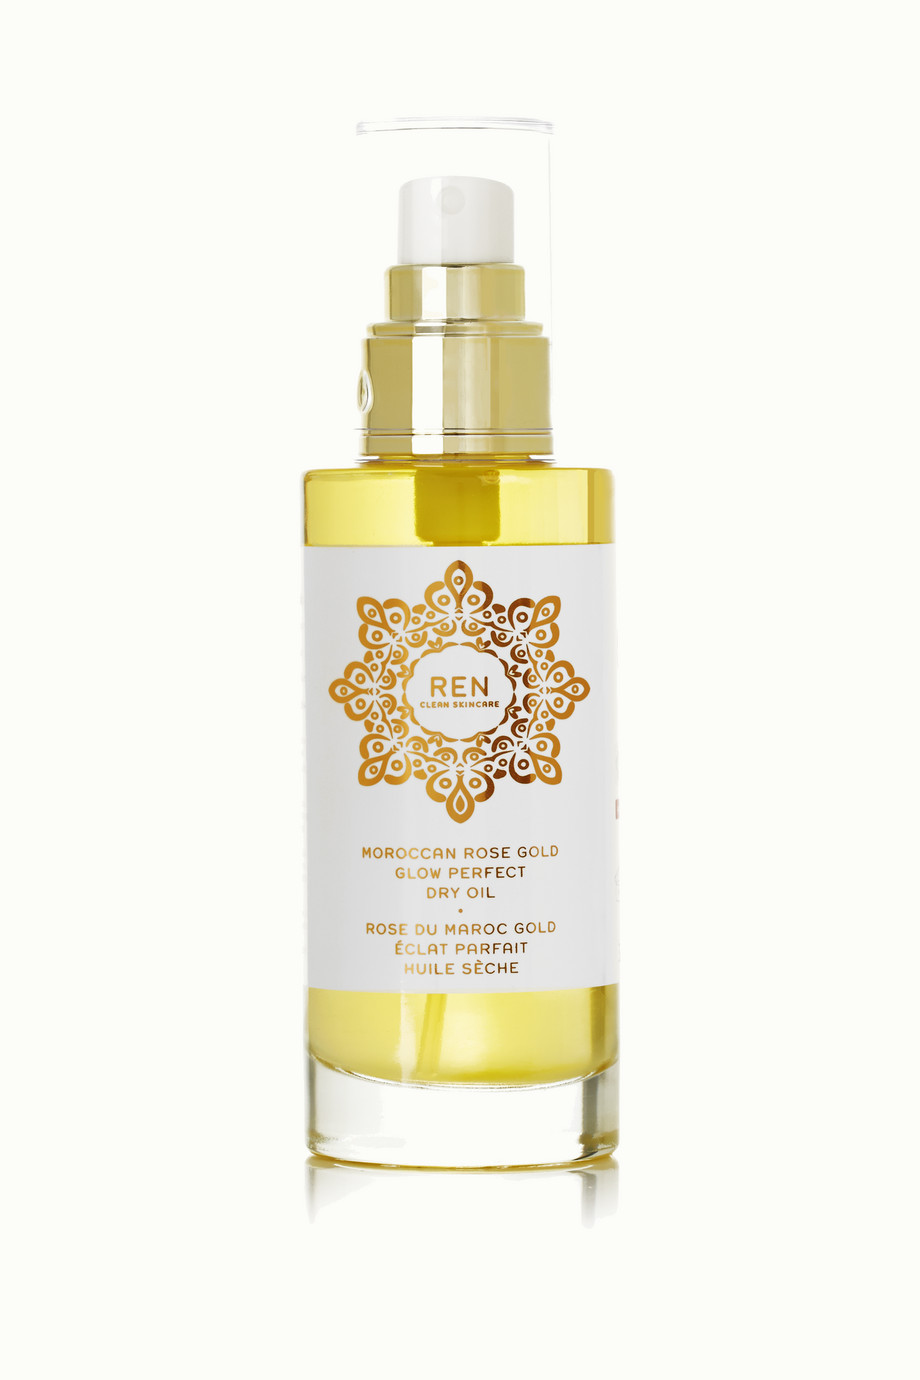 Moroccan Rose Gold Glow Perfect Dry Oil, 100ml, by Ren Skincare